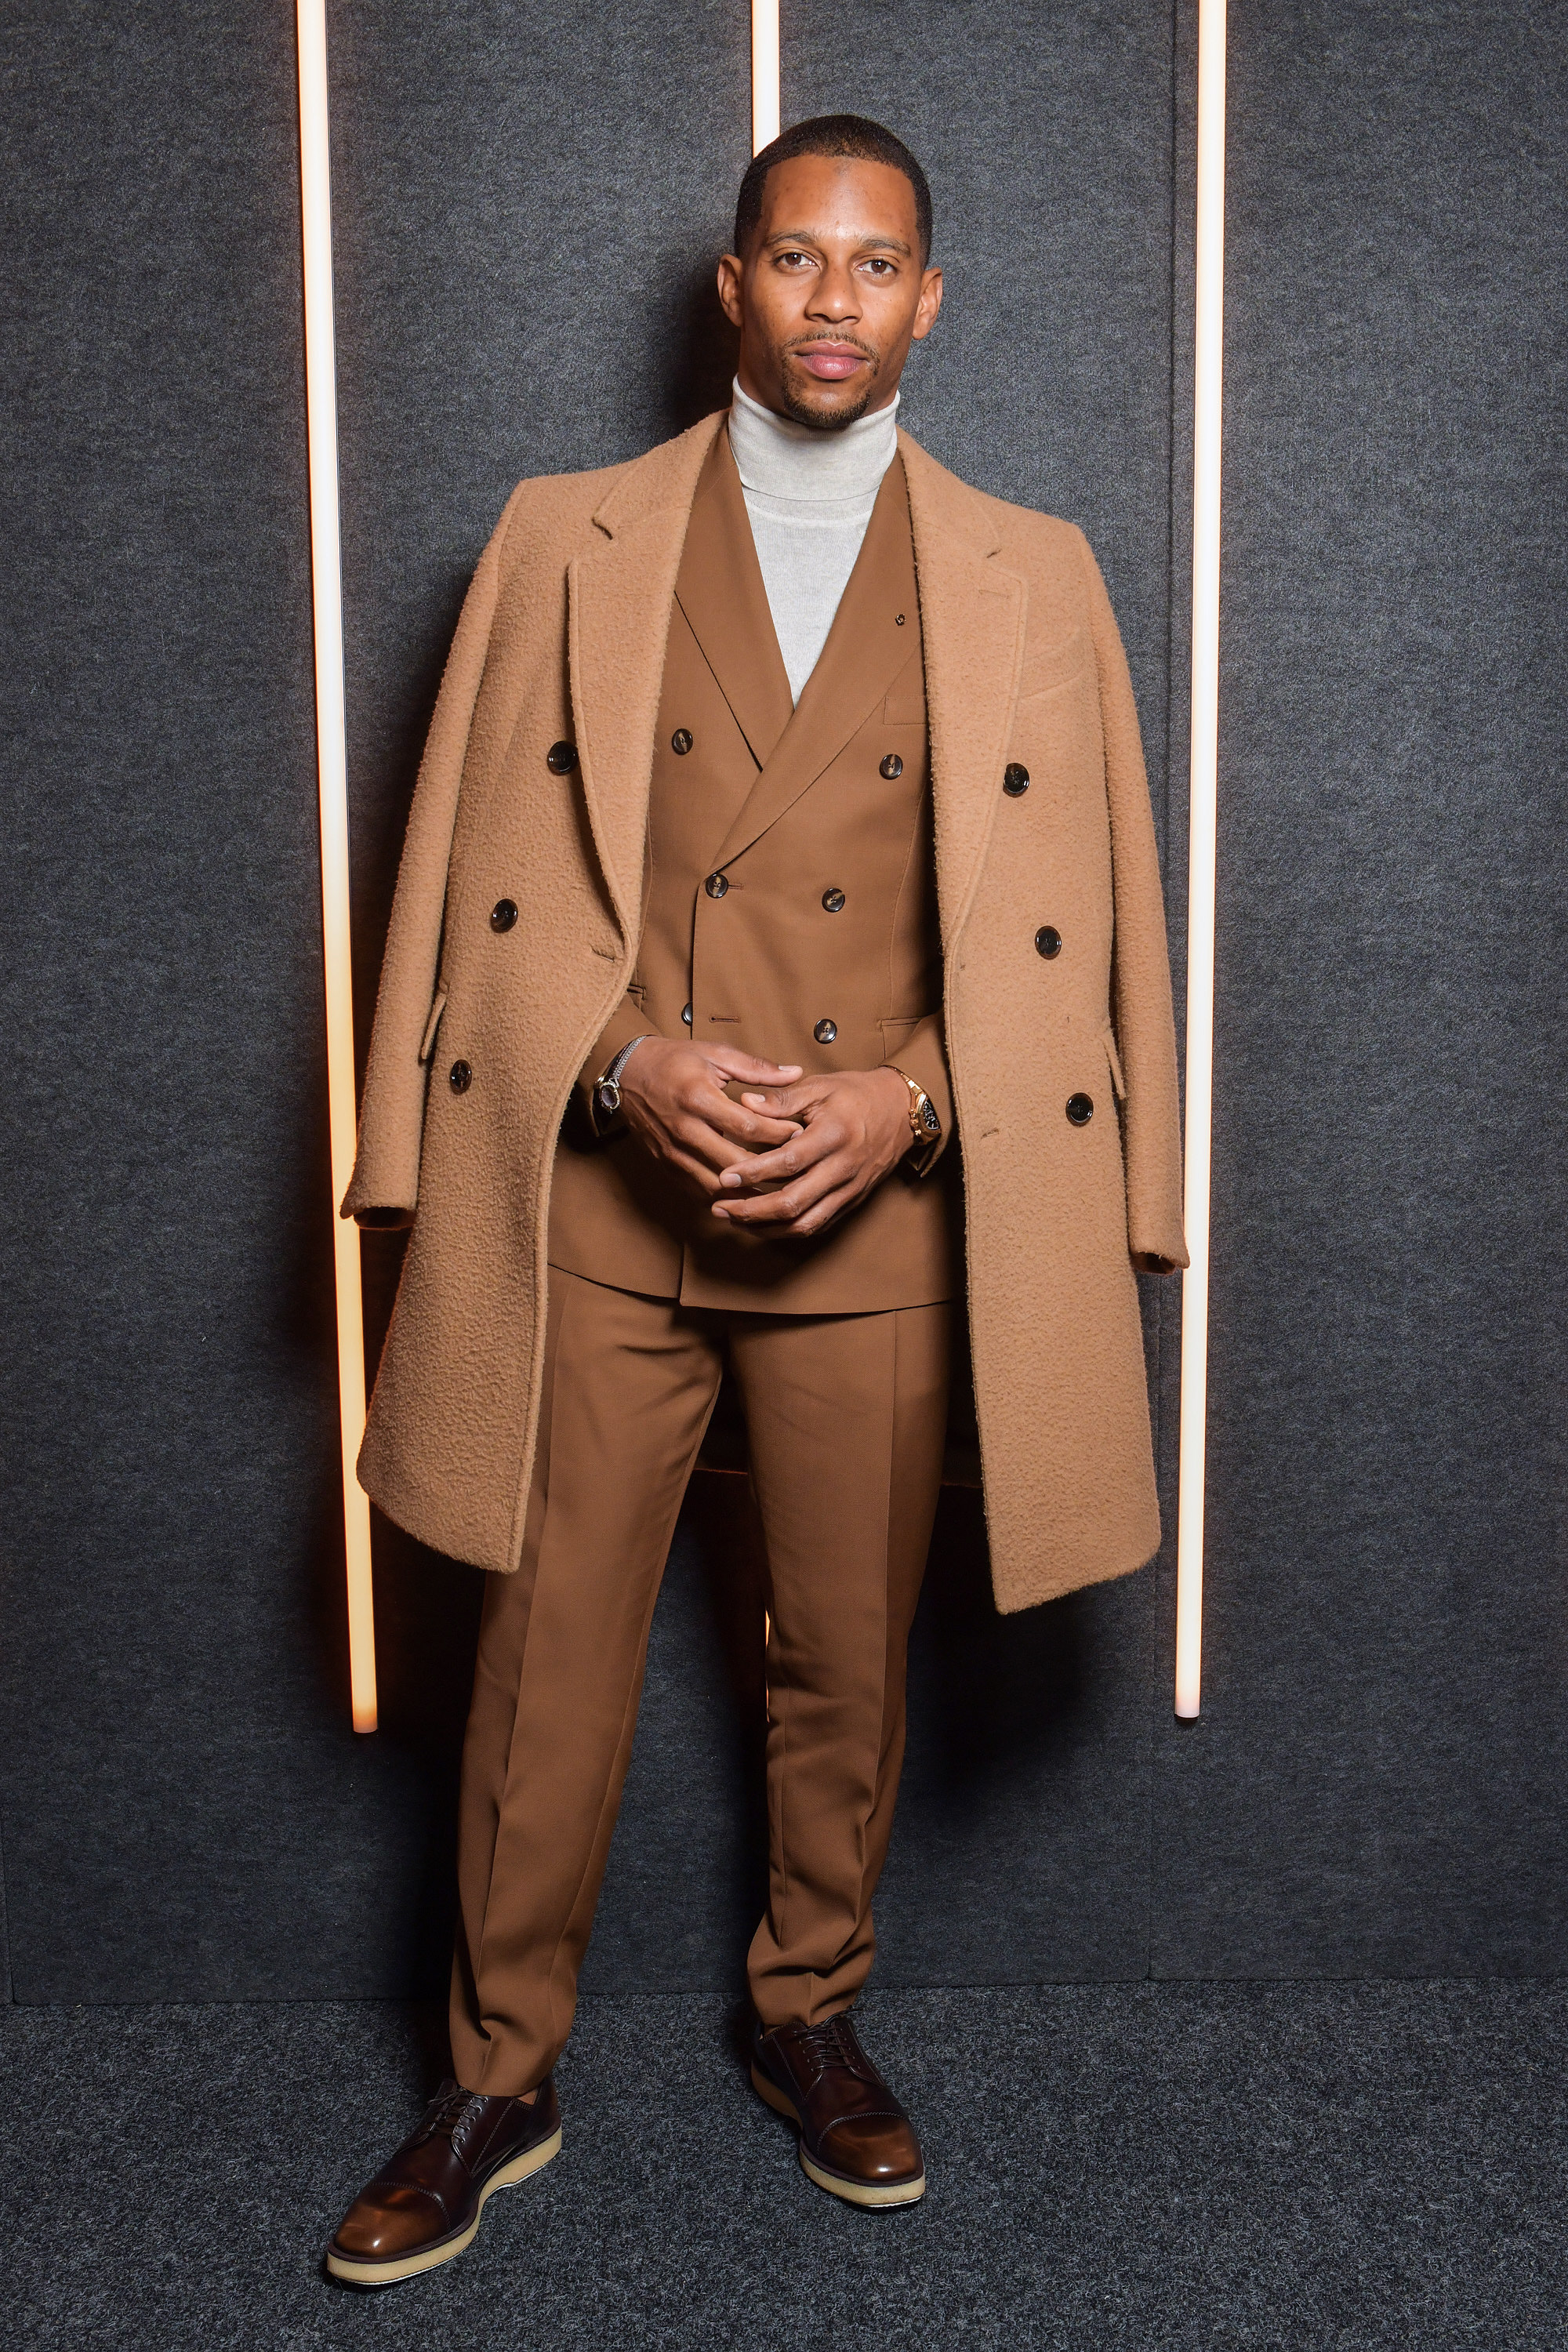 Victor Cruz backstage at the BOSS Fall/Winter 2019 show at Basketball City during New York Fashion Week on Wednesday, February 13, in New York City. Photography, Courtesy of BOSS.